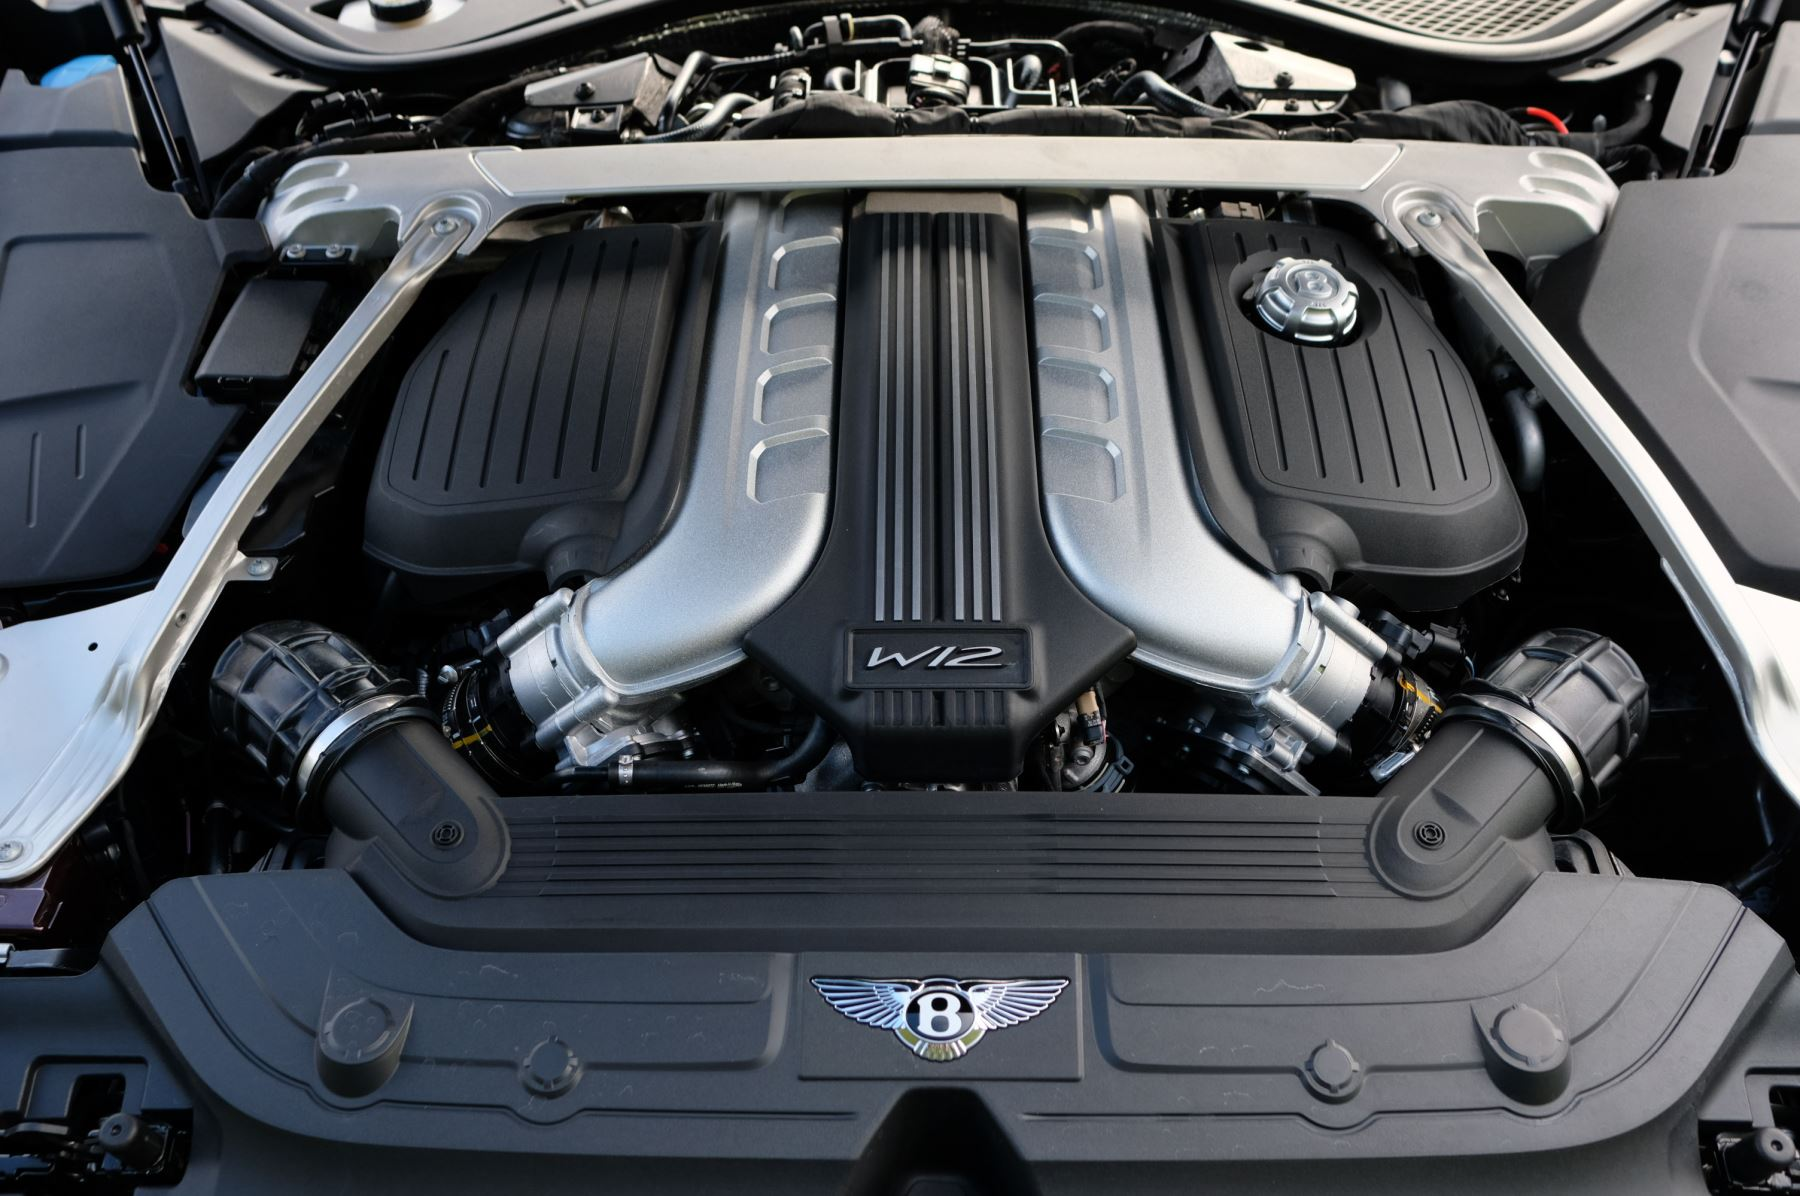 Bentley Continental GTC 6.0 W12 - First Edition Specification image 10